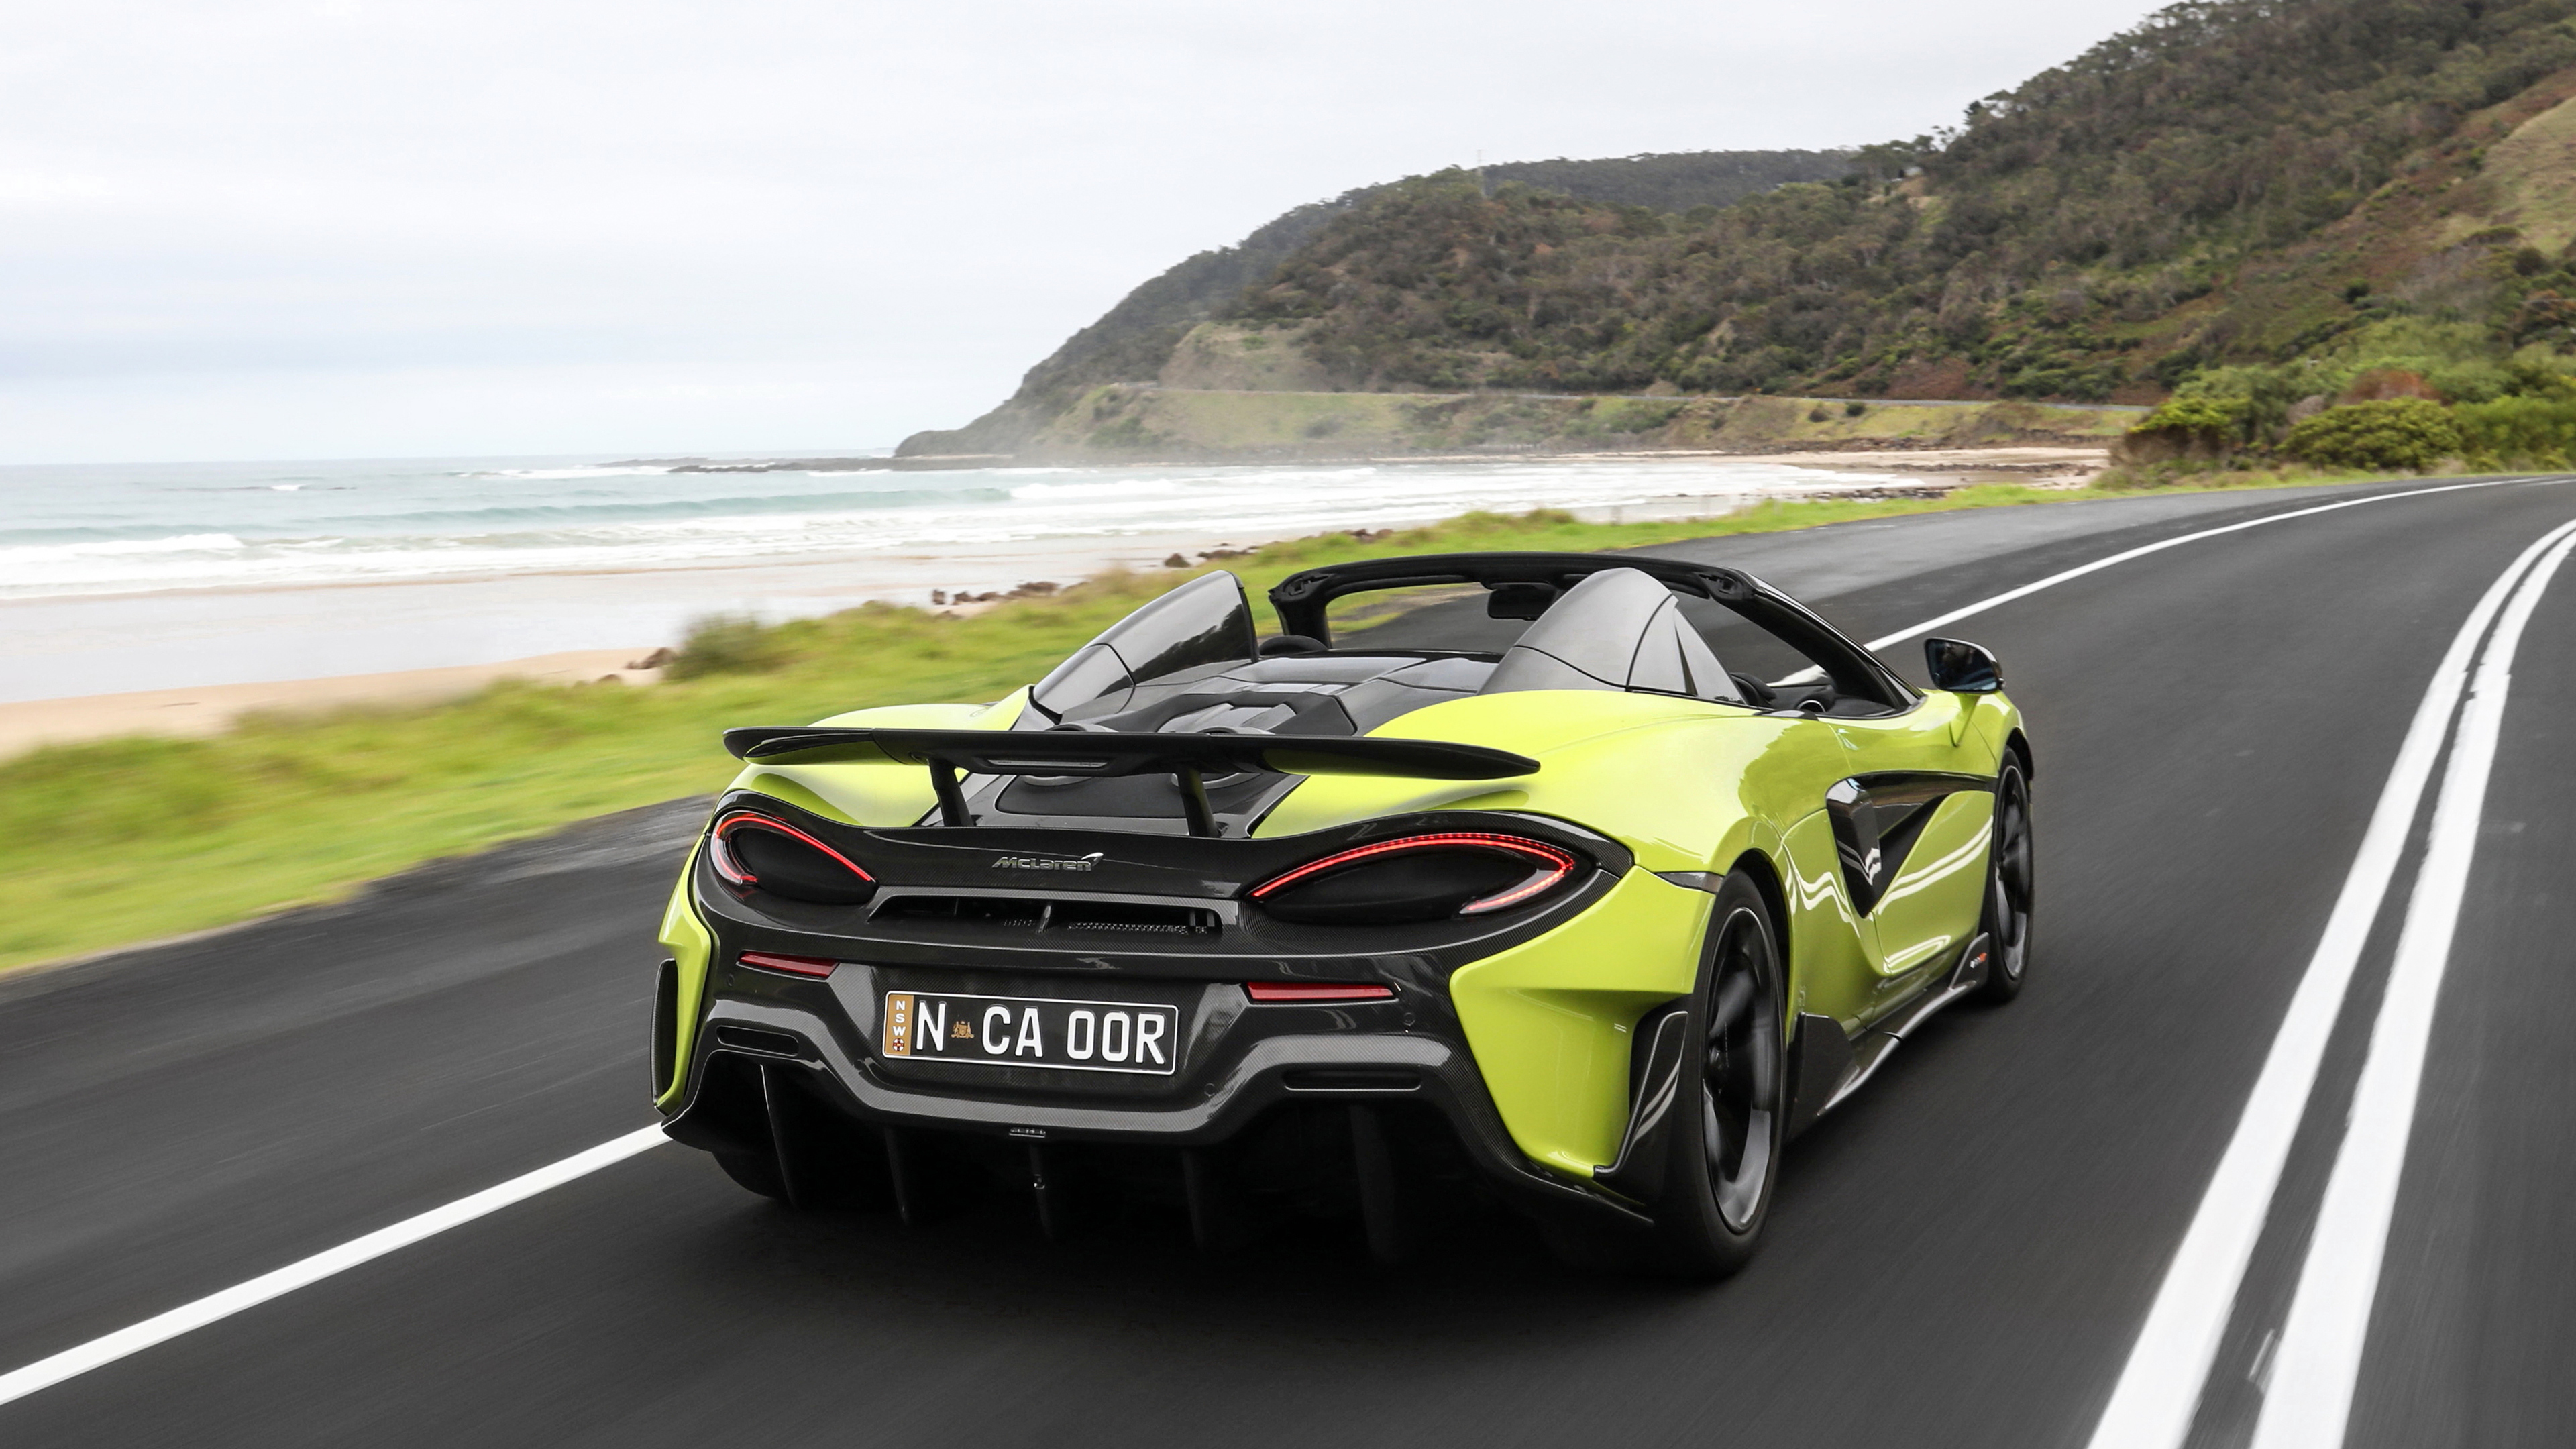 mclaren 600lt spider 1562108064 - Mclaren 600LT Spider - mclaren wallpapers, mclaren 600lt wallpapers, hd-wallpapers, cars wallpapers, 4k-wallpapers, 2019 cars wallpapers